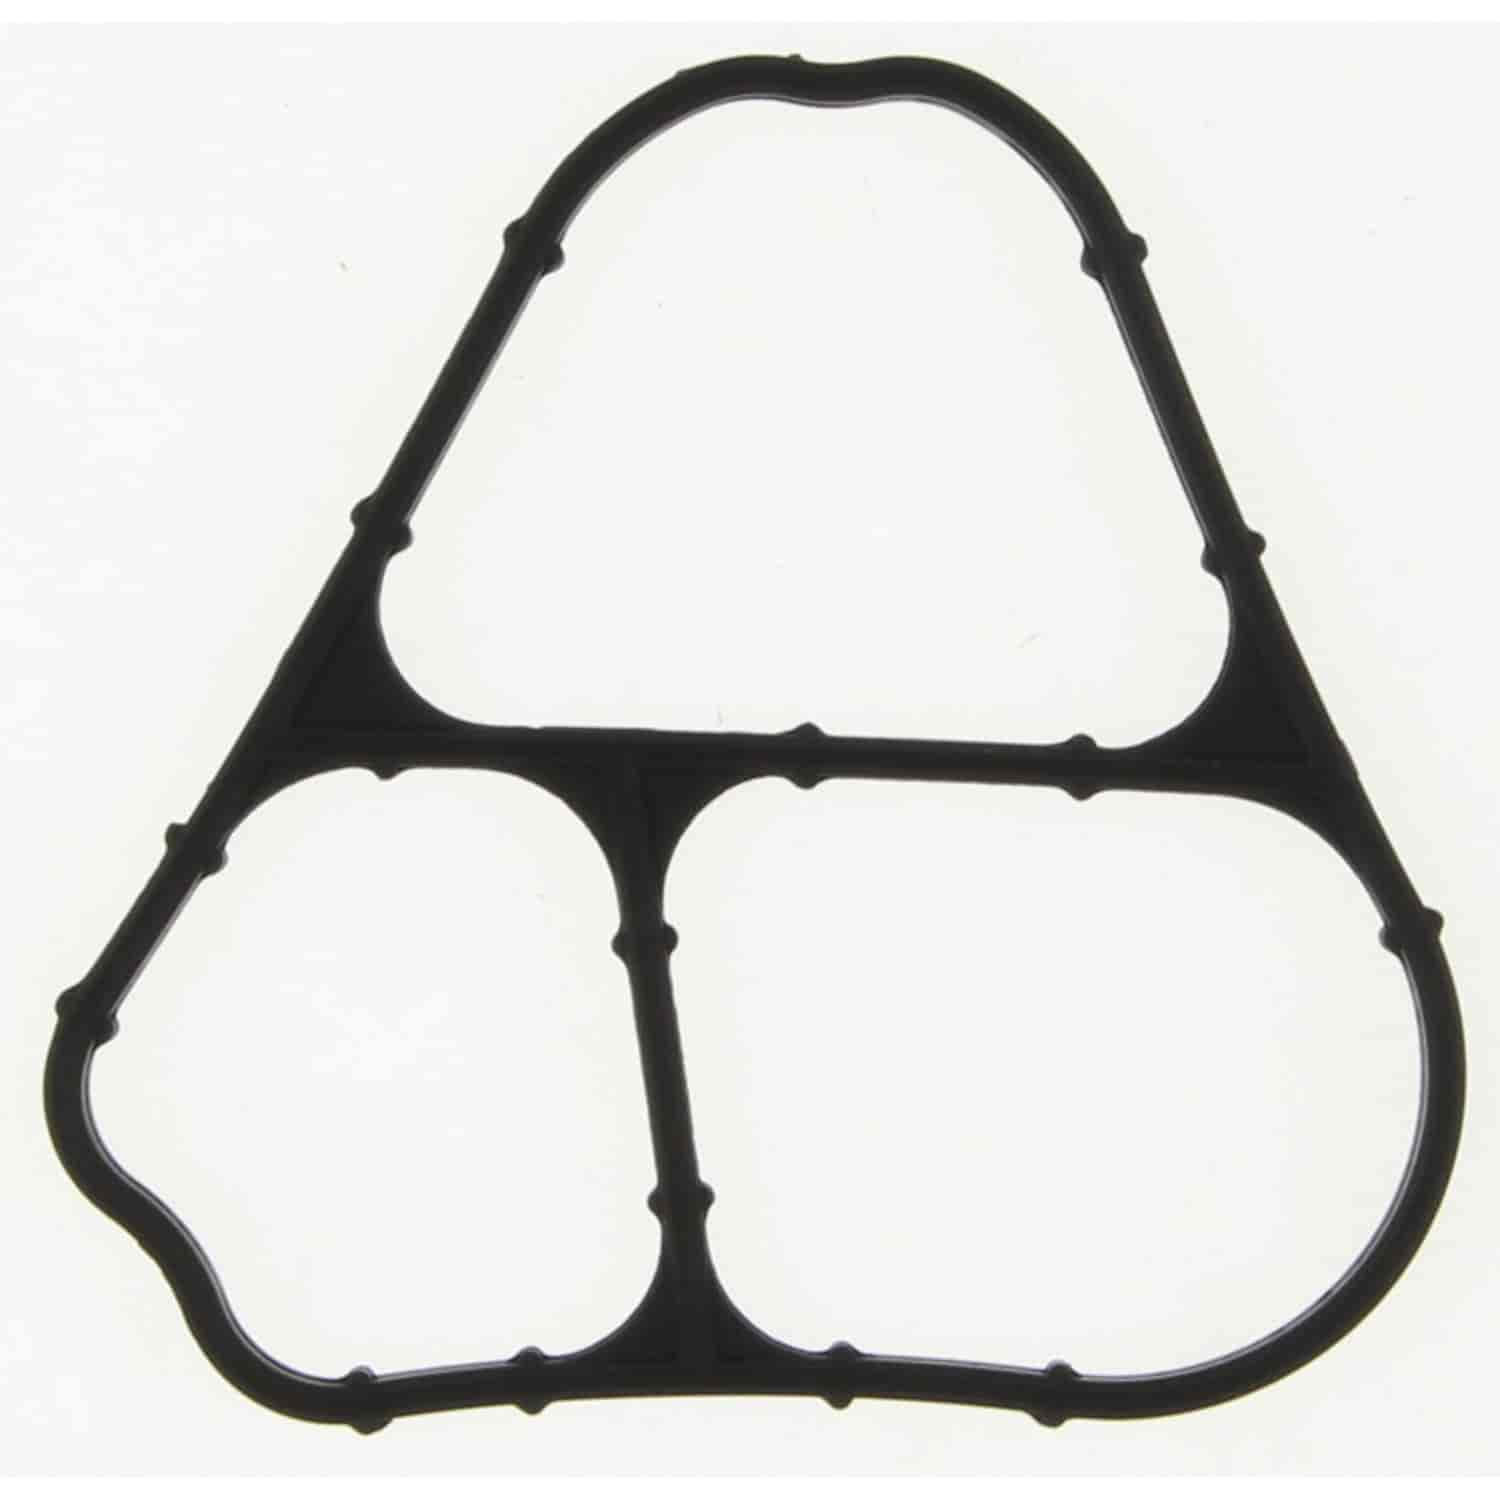 Clevite MAHLE B32622: Oil Filter Adapter Gasket MINI 1.6L